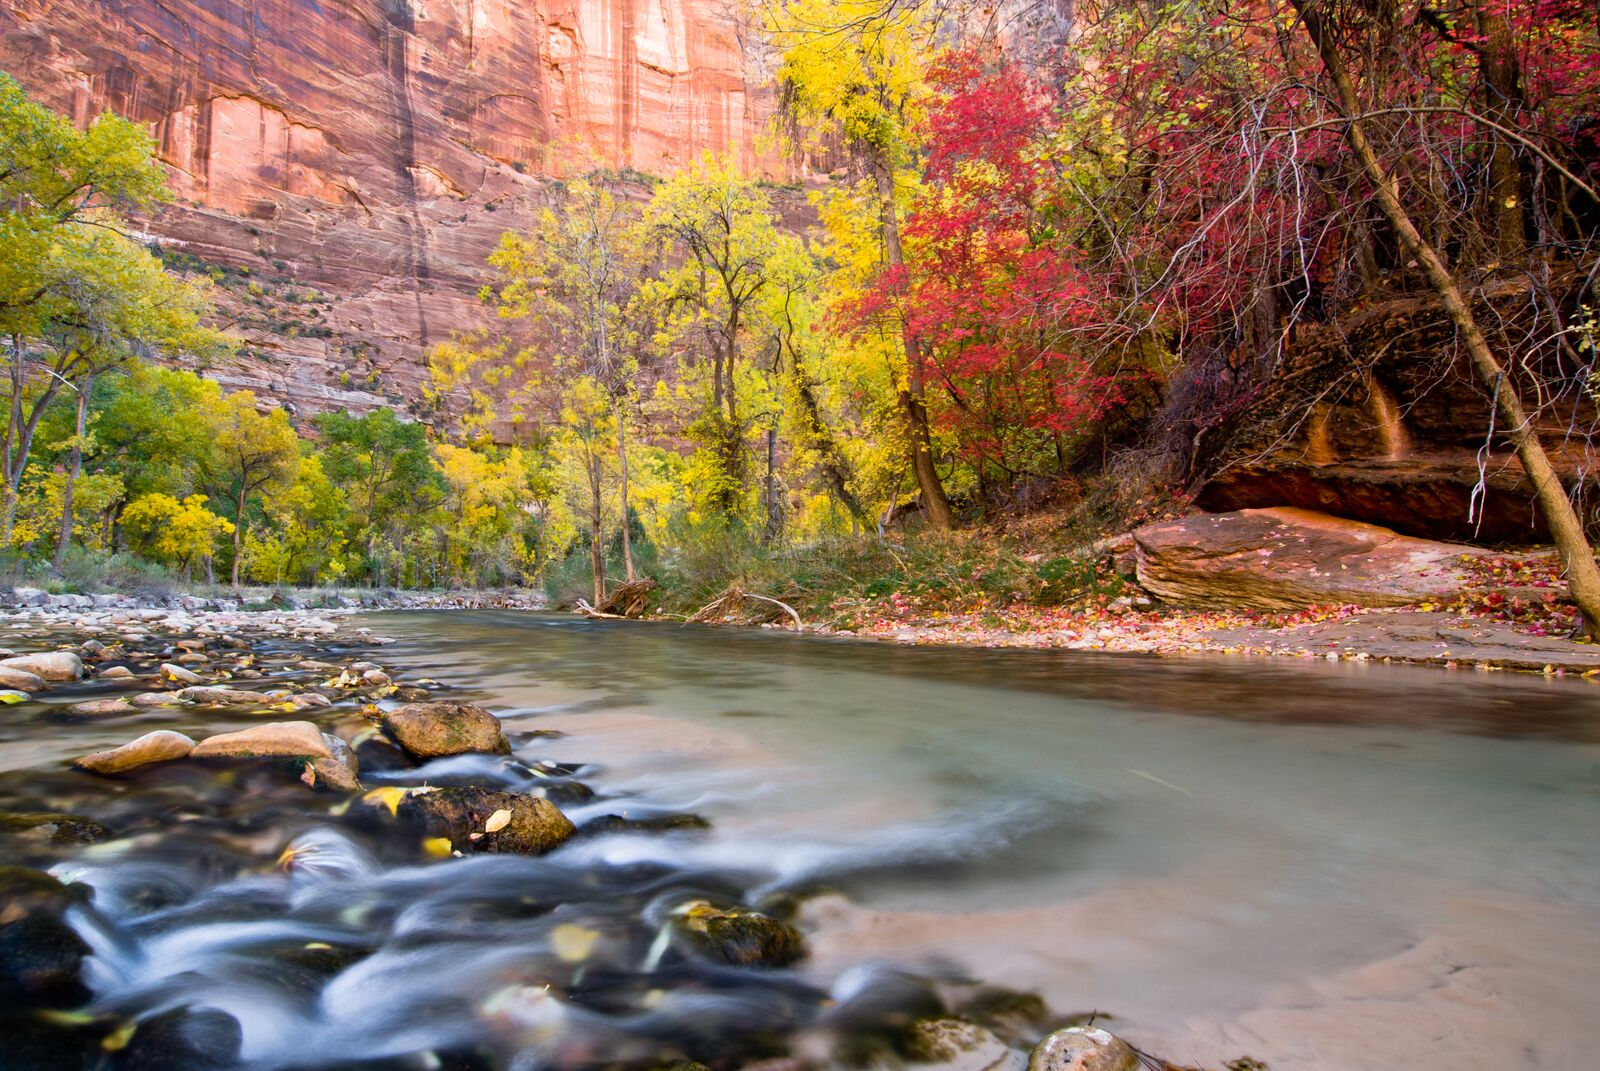 Zion's Narrows with Flowing Water and Changing Leaves during Fall